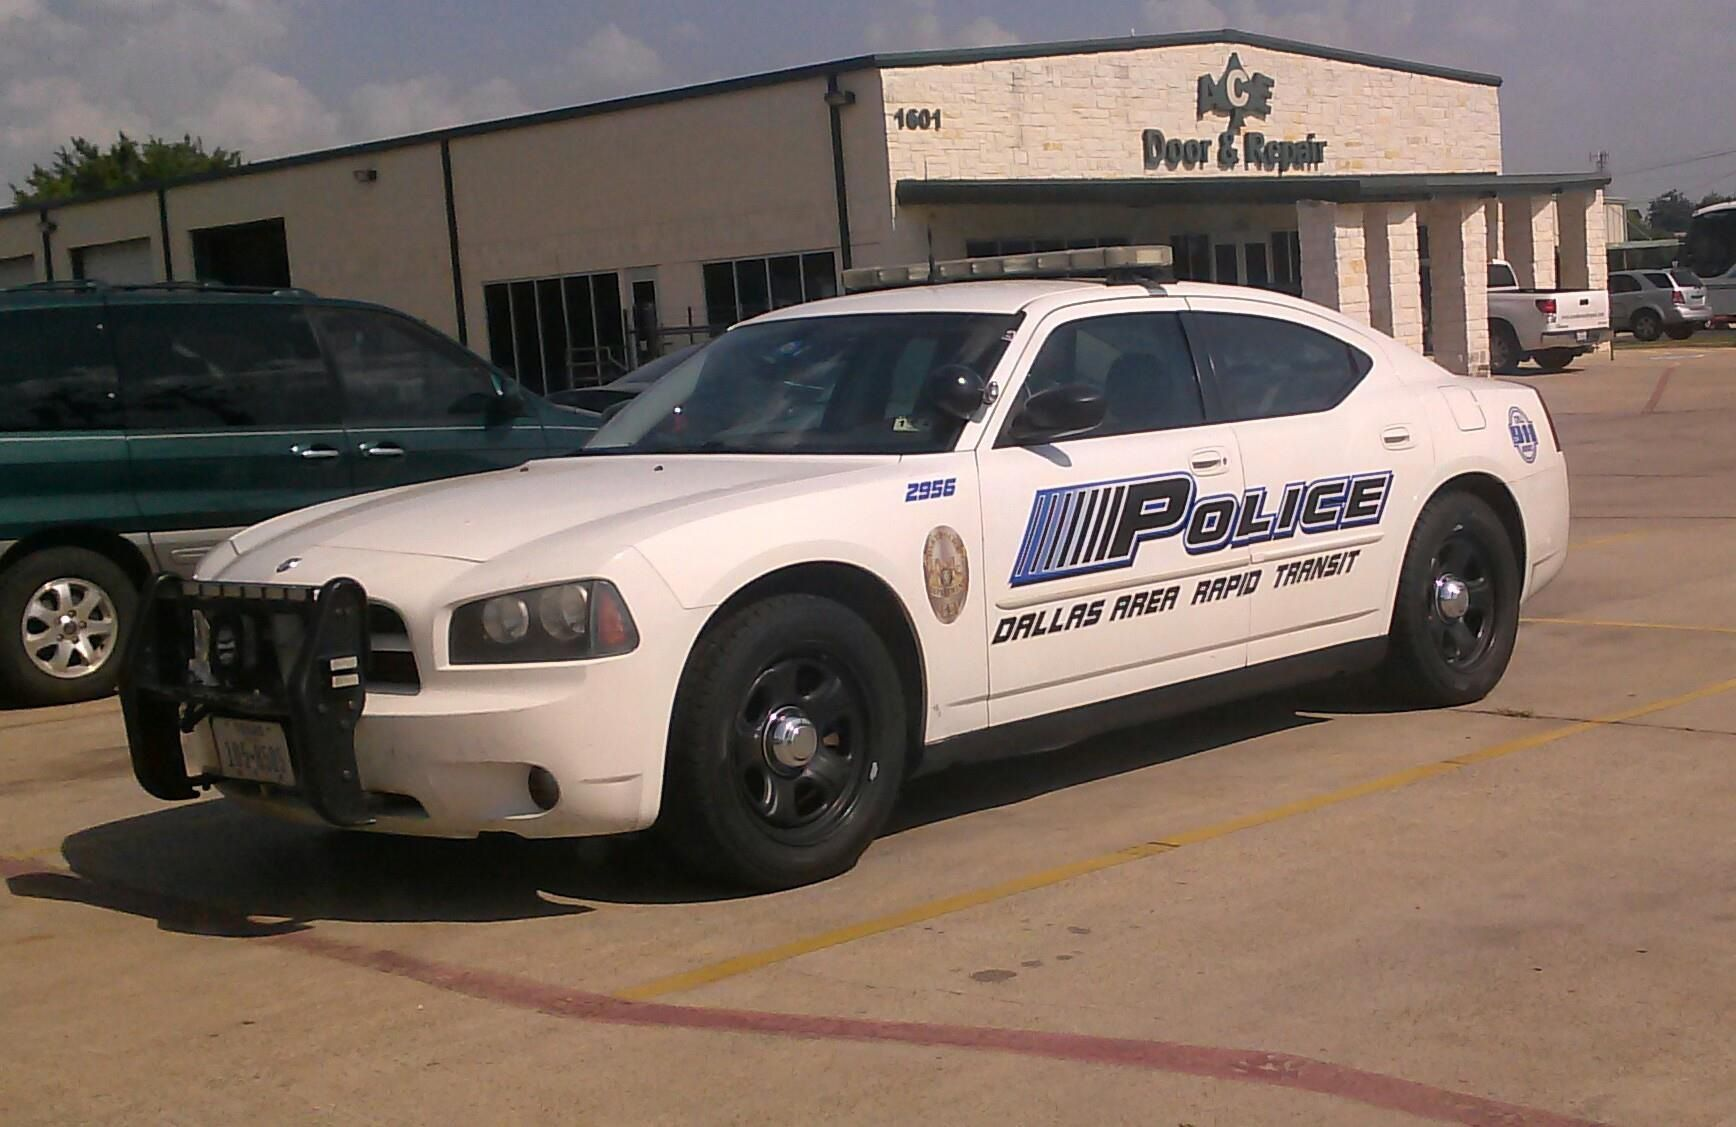 Mopar Police Vehicle Dodge Charger Pursuit With Images Police Cars Metro Police Cars Usa